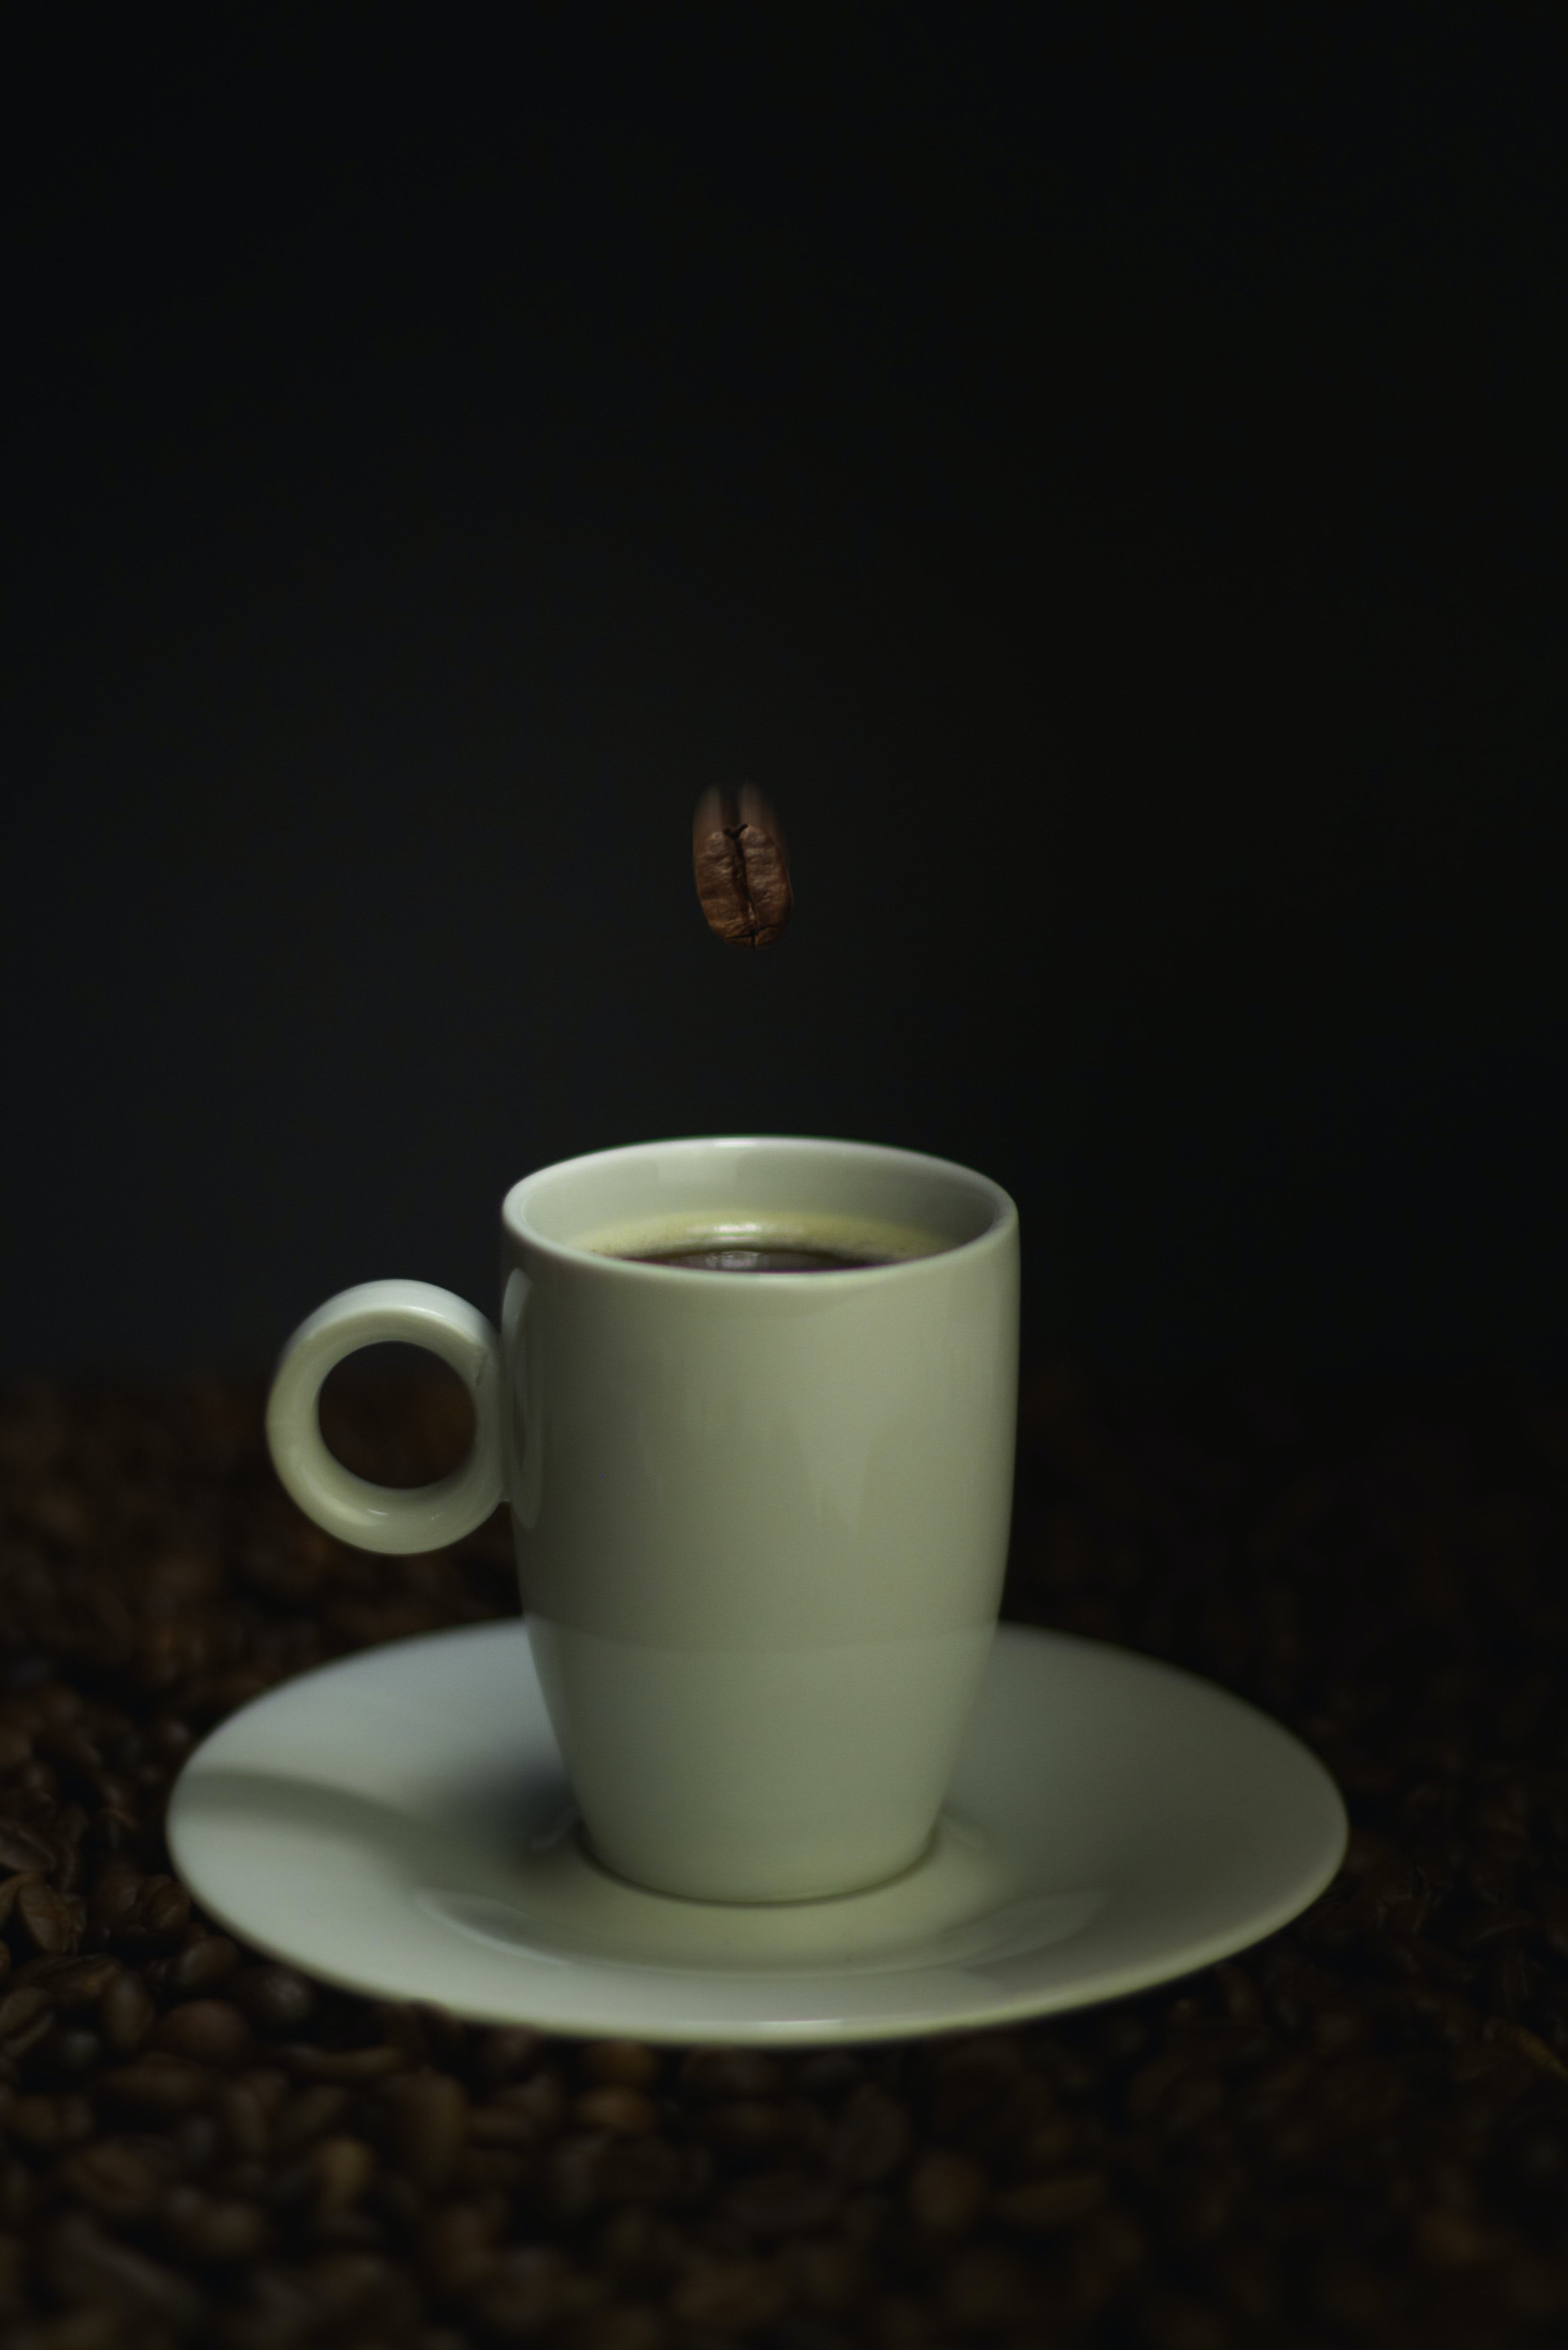 Free stock photo of coffee, coffee beans, coffee cup